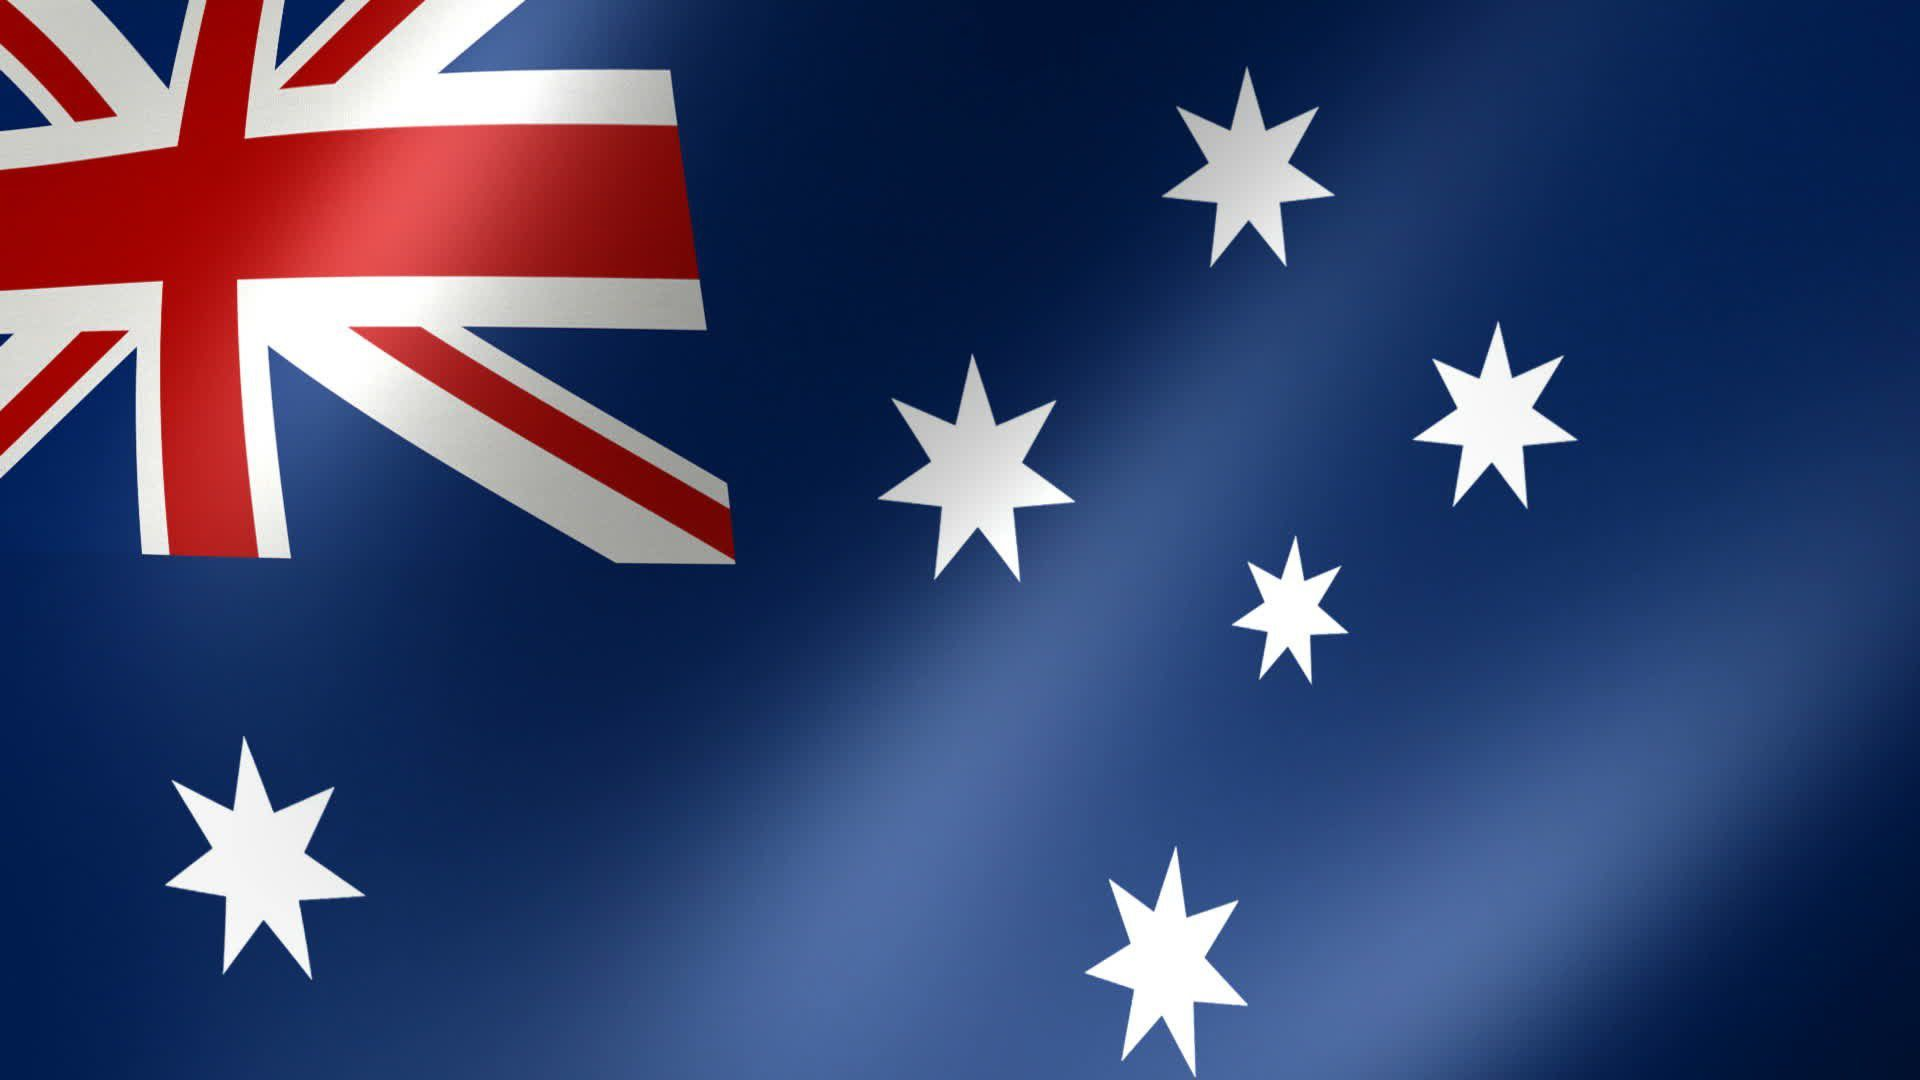 Australia Flag Wallpapers Free Download Adorable